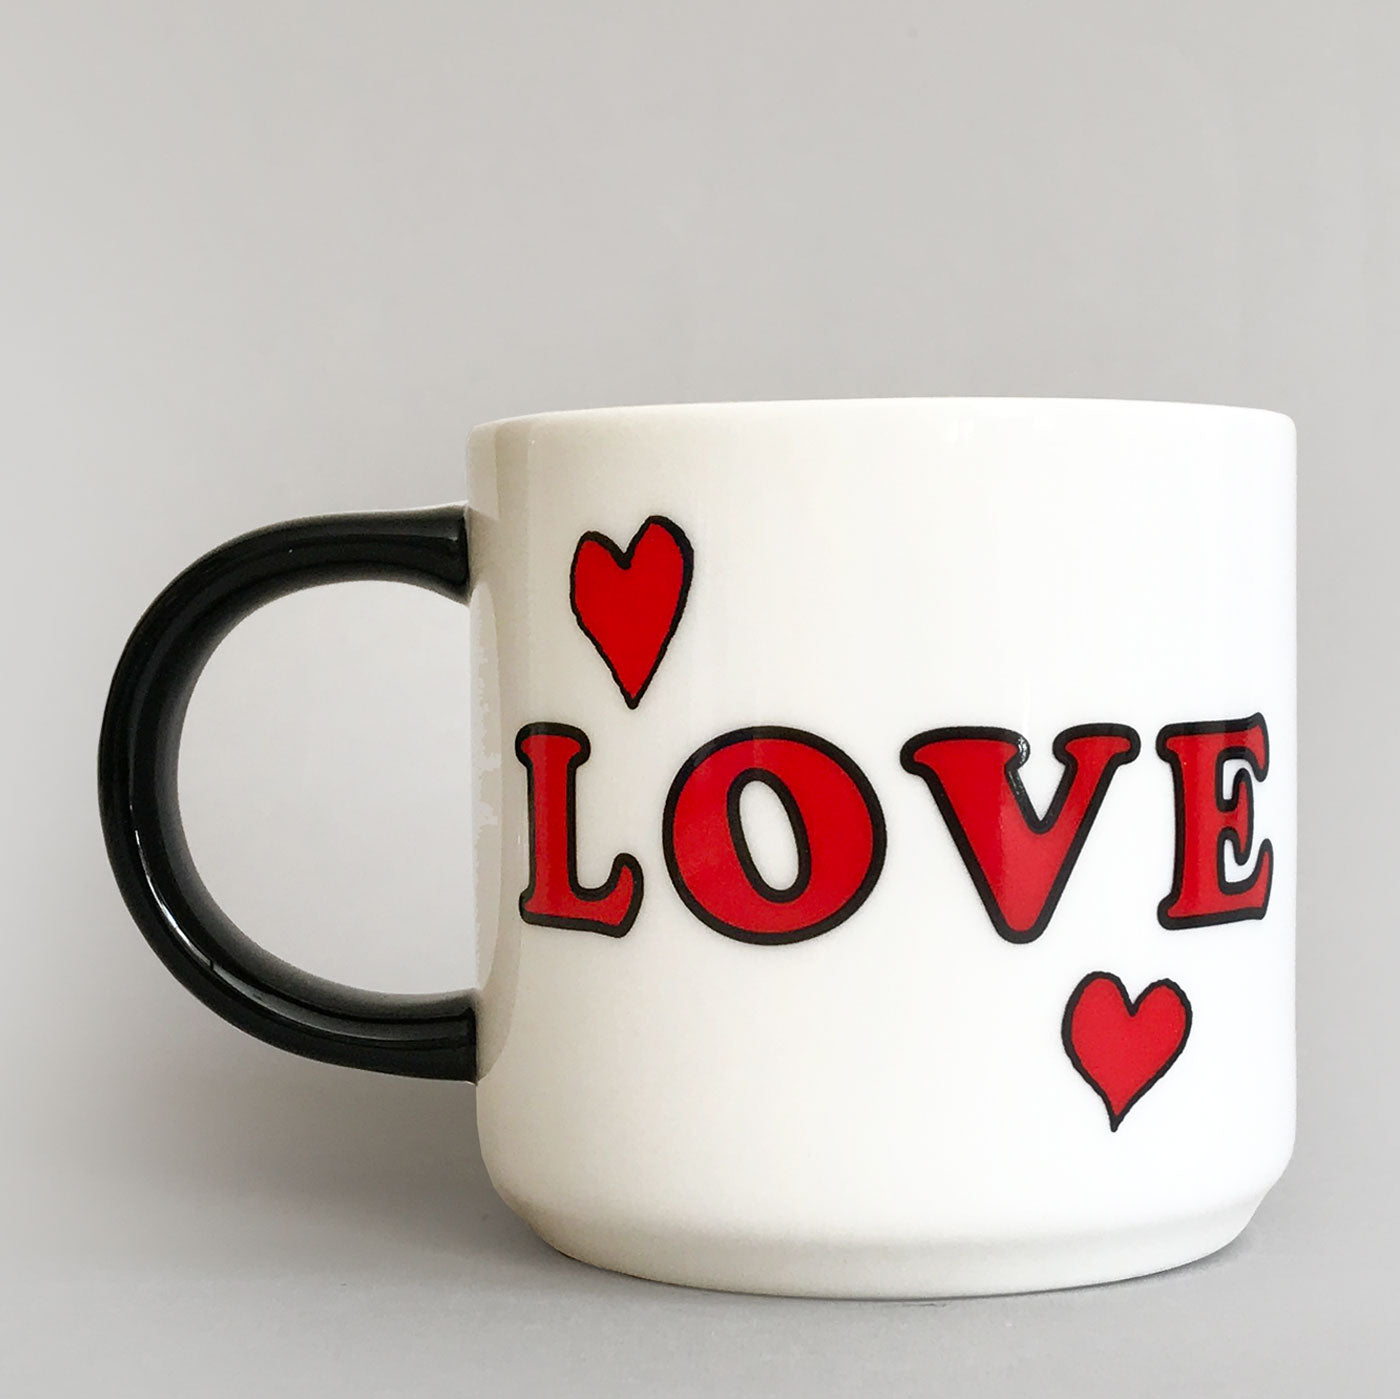 Peanuts Mug - Love | Snoopy Woodstock | Colours May Vary